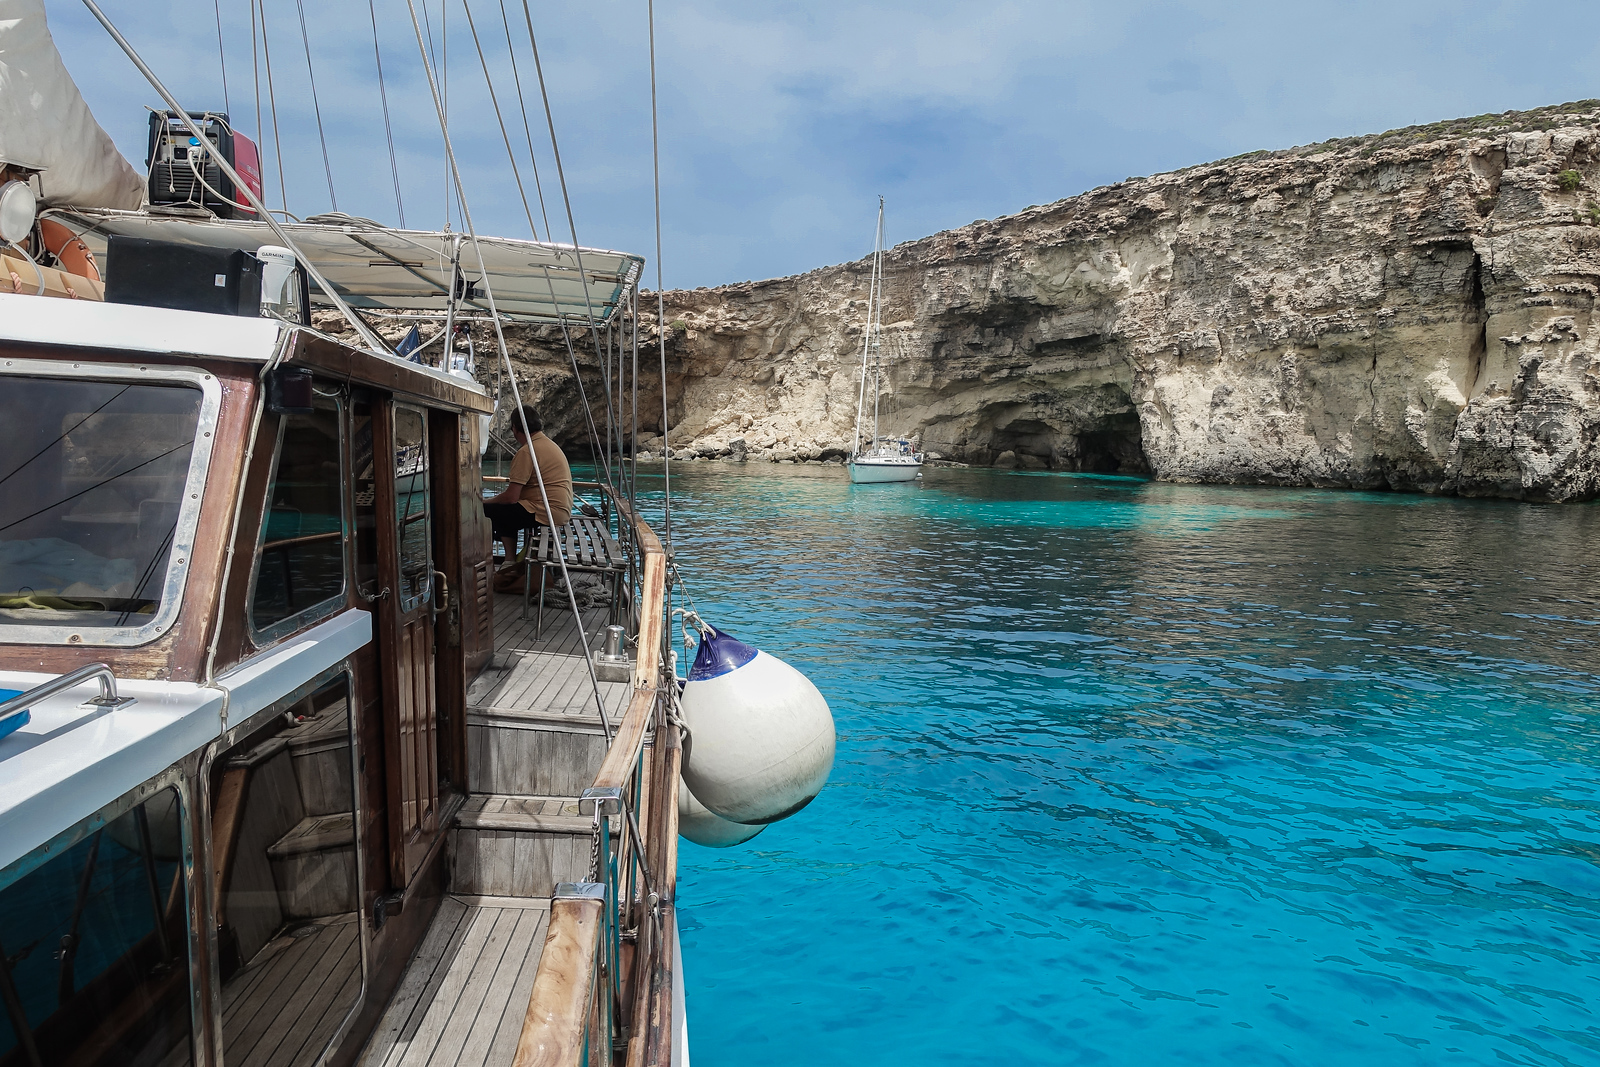 Sailing the Blue Lagoon in Malta